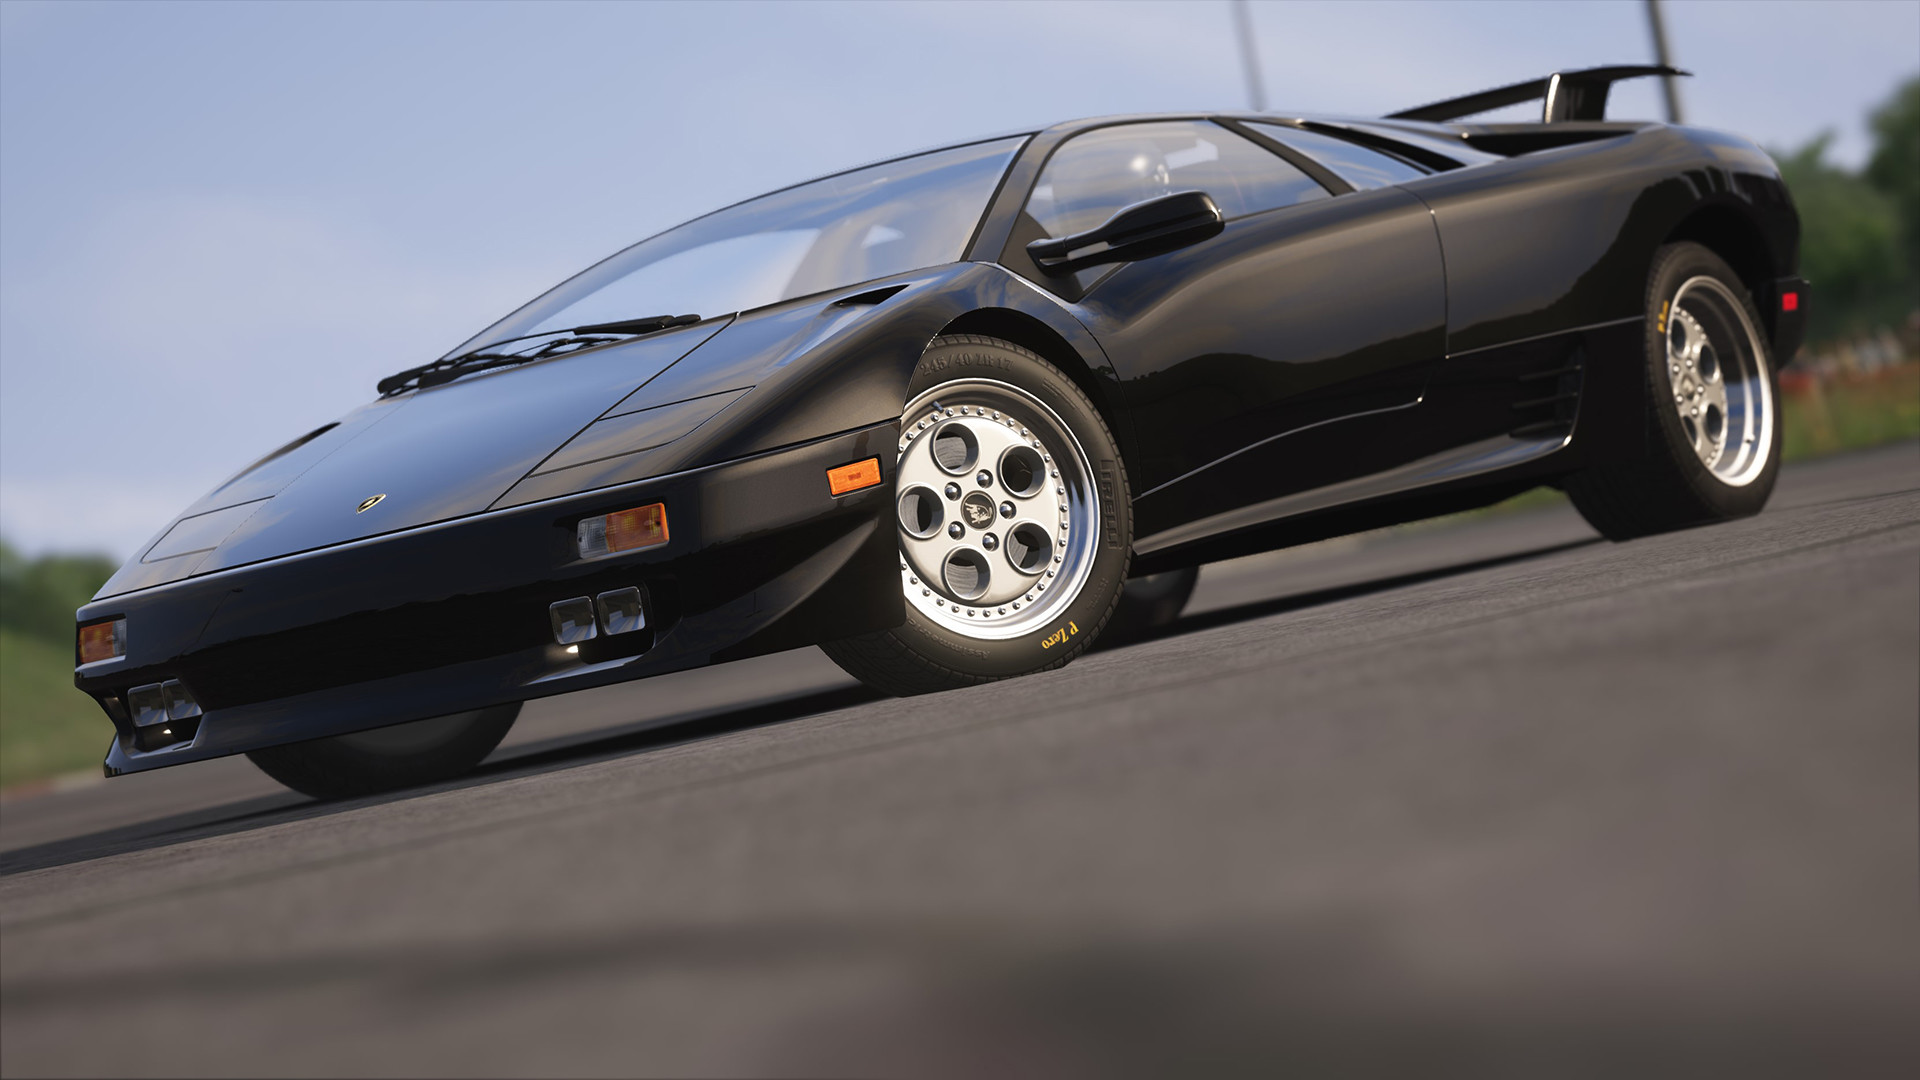 Wallpaper Lamborghini Diablo Vttt For Sale 2018 Carina